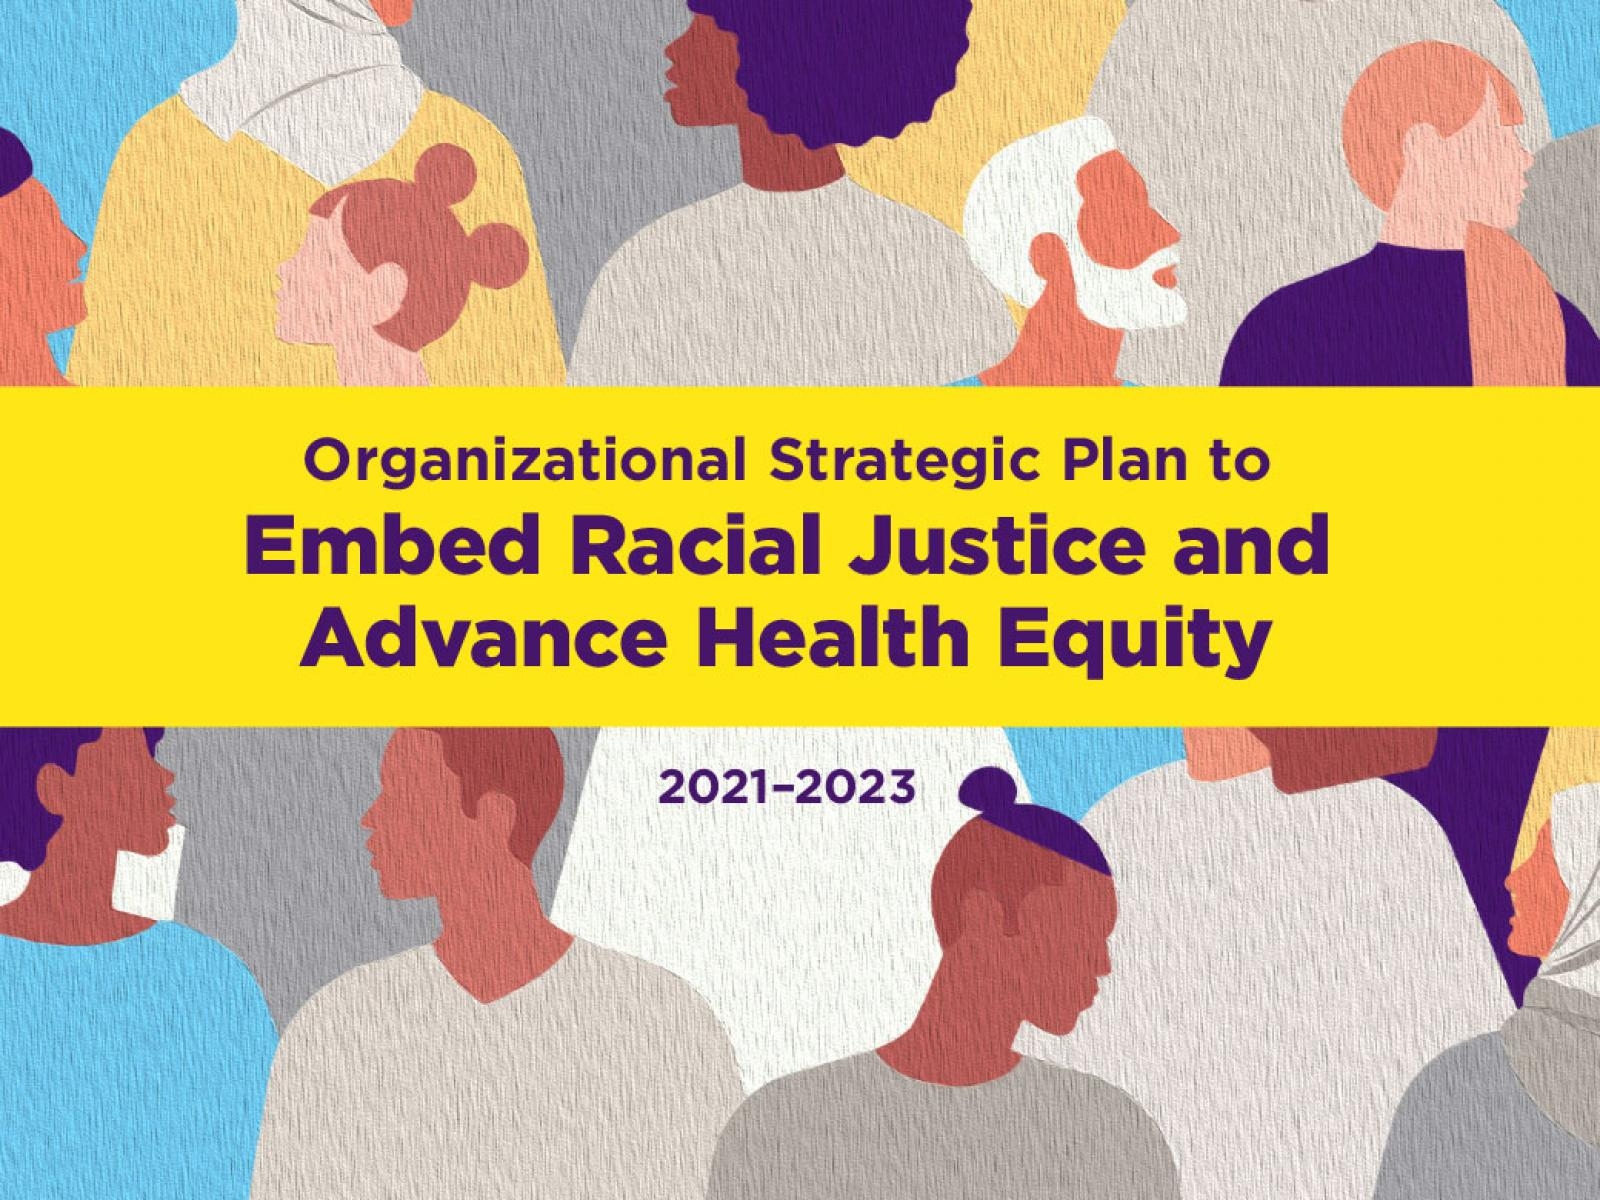 AMA's strategic plan for embedding equity